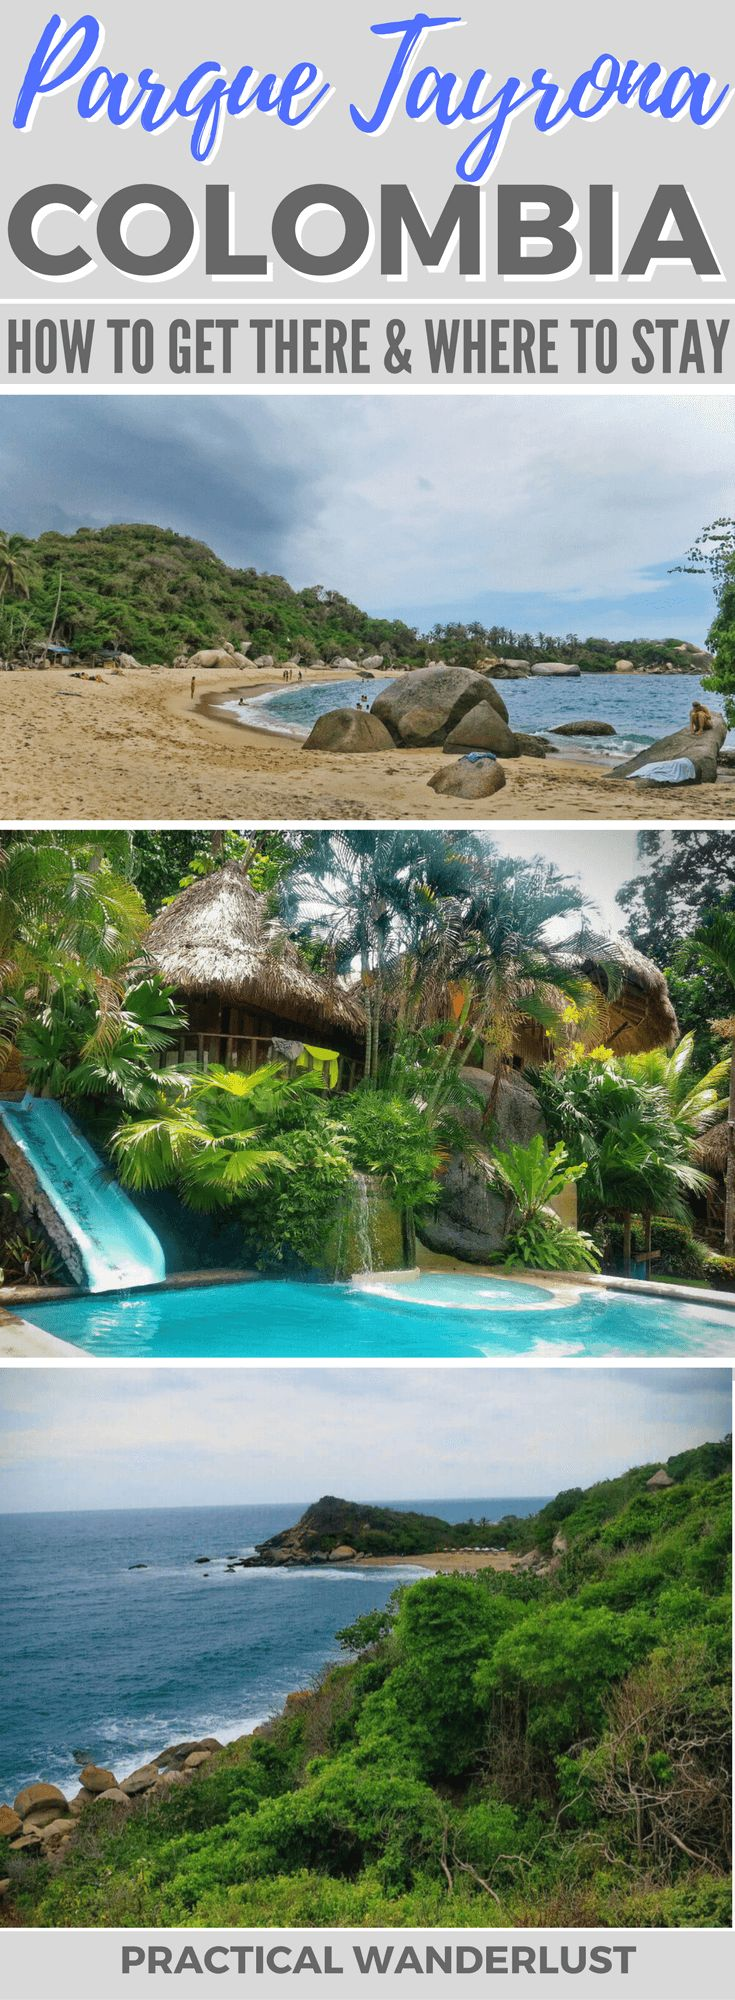 Parque Tayrona, Colombia wasn't what we were expecting. But maybe it was our own fault. Don't make the same mistakes as we did! Here's how to get to Parque Tayrona, tips for visiting, and where to stay.